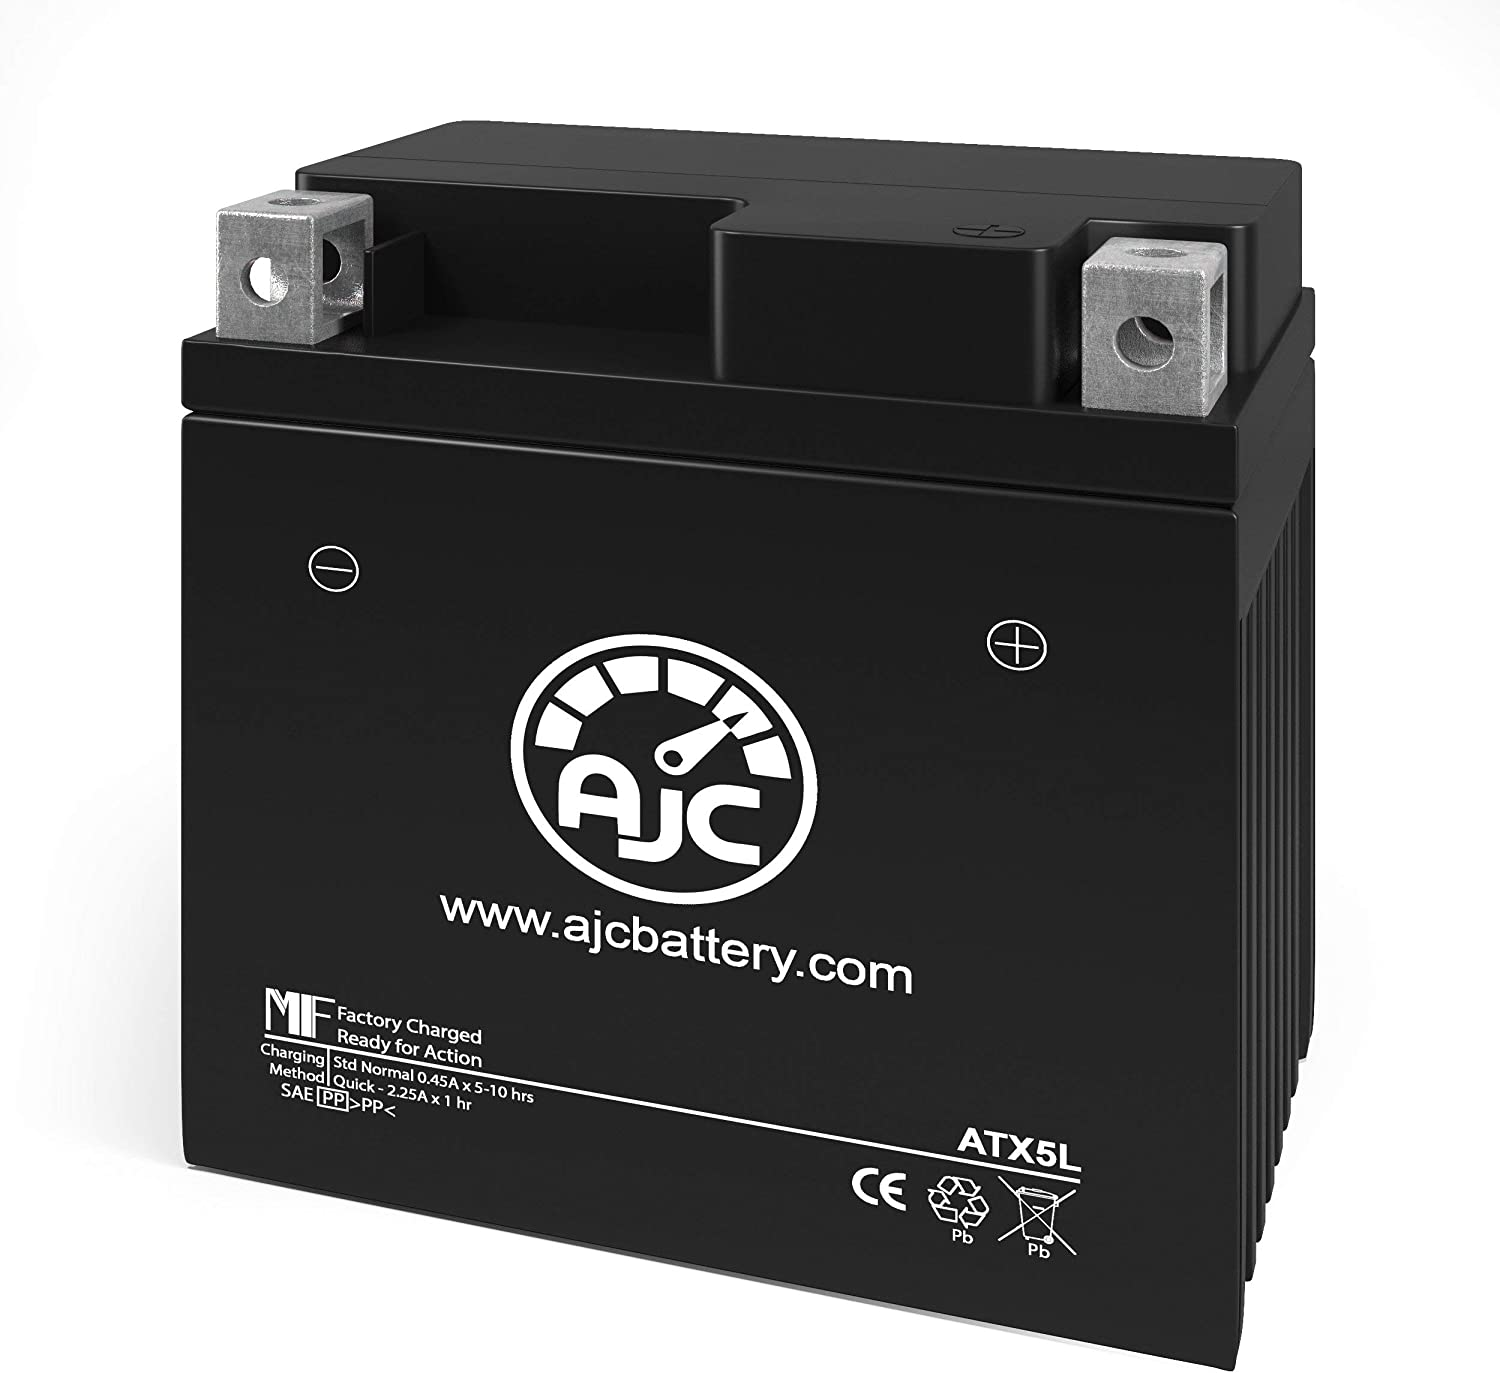 Yamaha XC50 Vino Classic 50CC Scooter and Moped Replacement Battery This is an AJC Brand Replacement 2006-2017